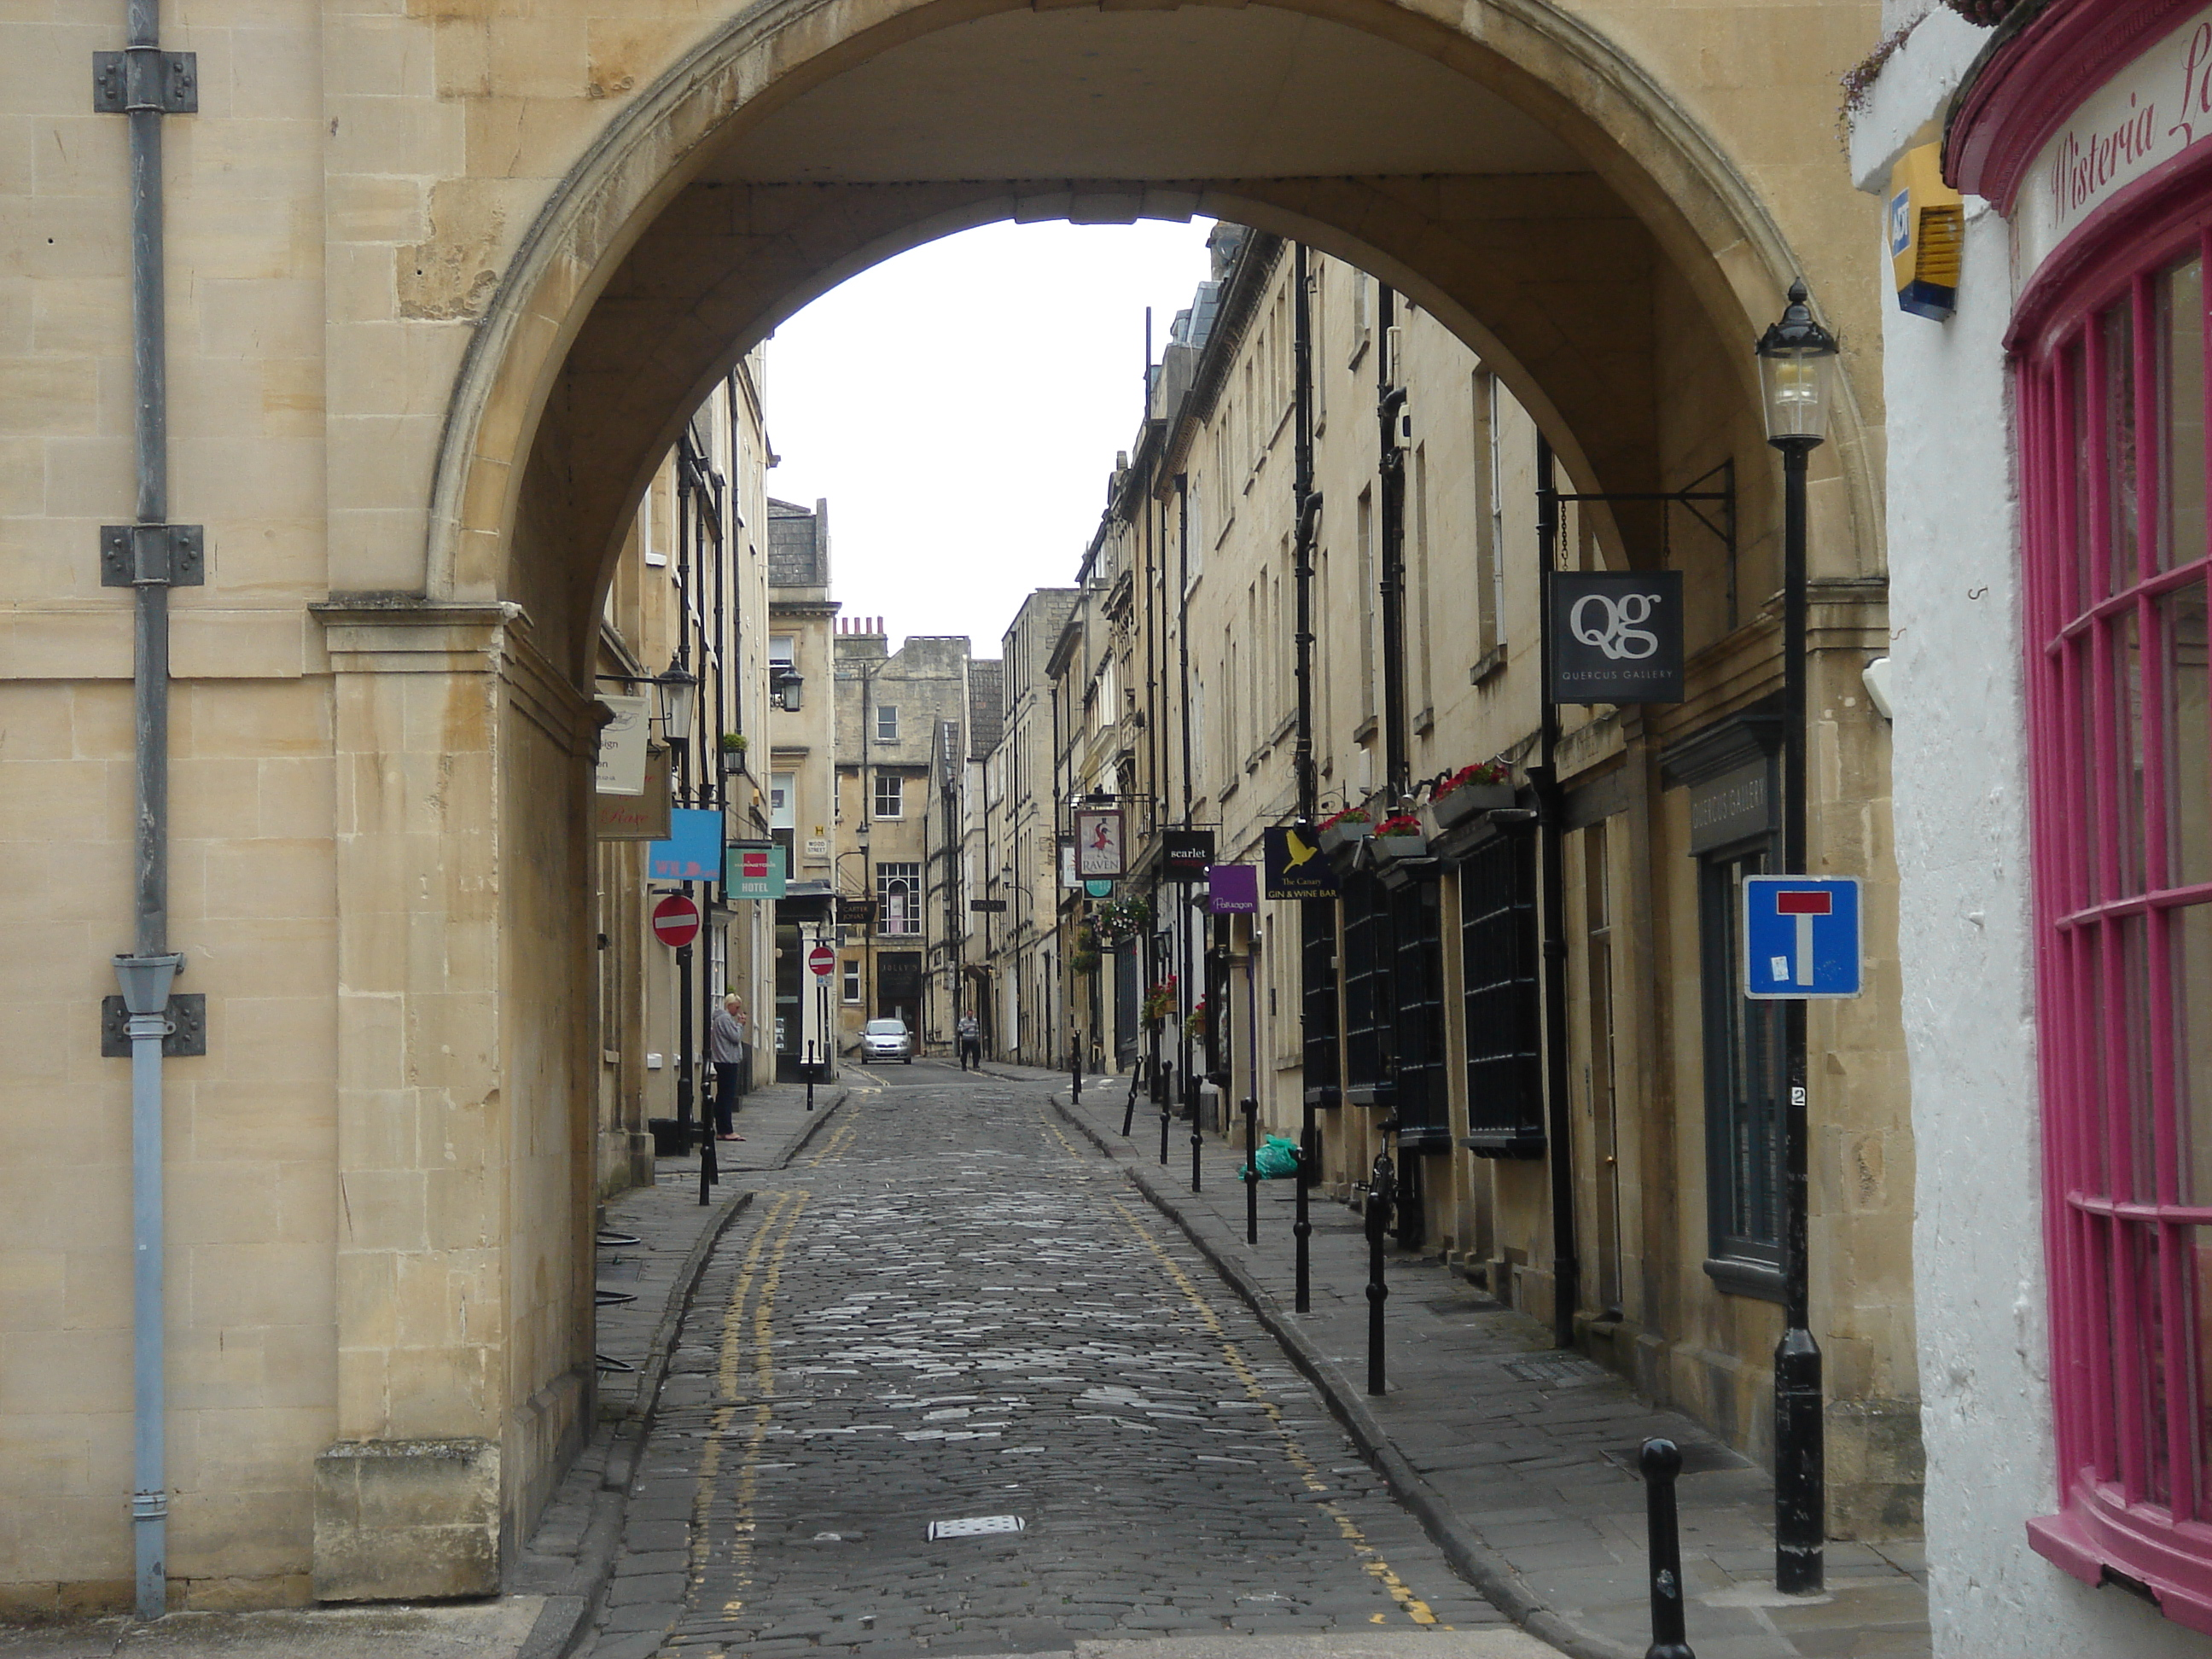 Street through arch 2